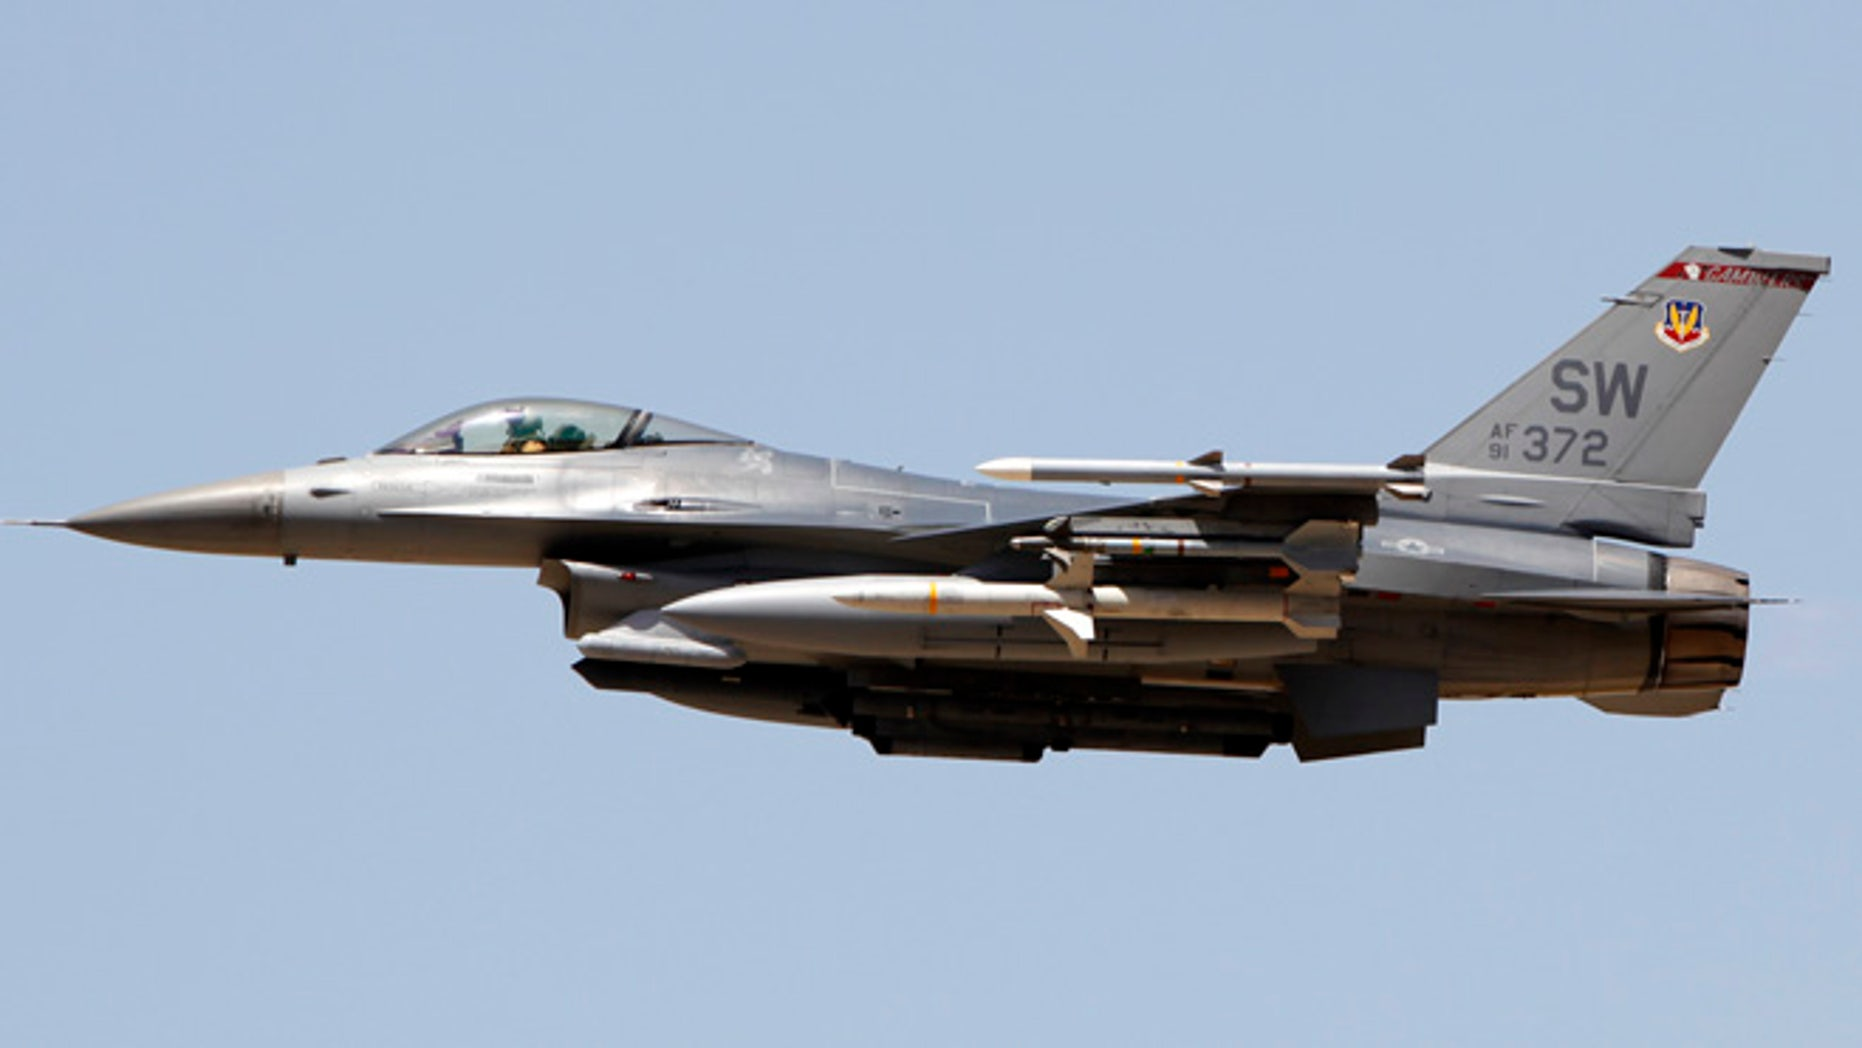 A pilot was able to safely eject before his F-16 crashed.